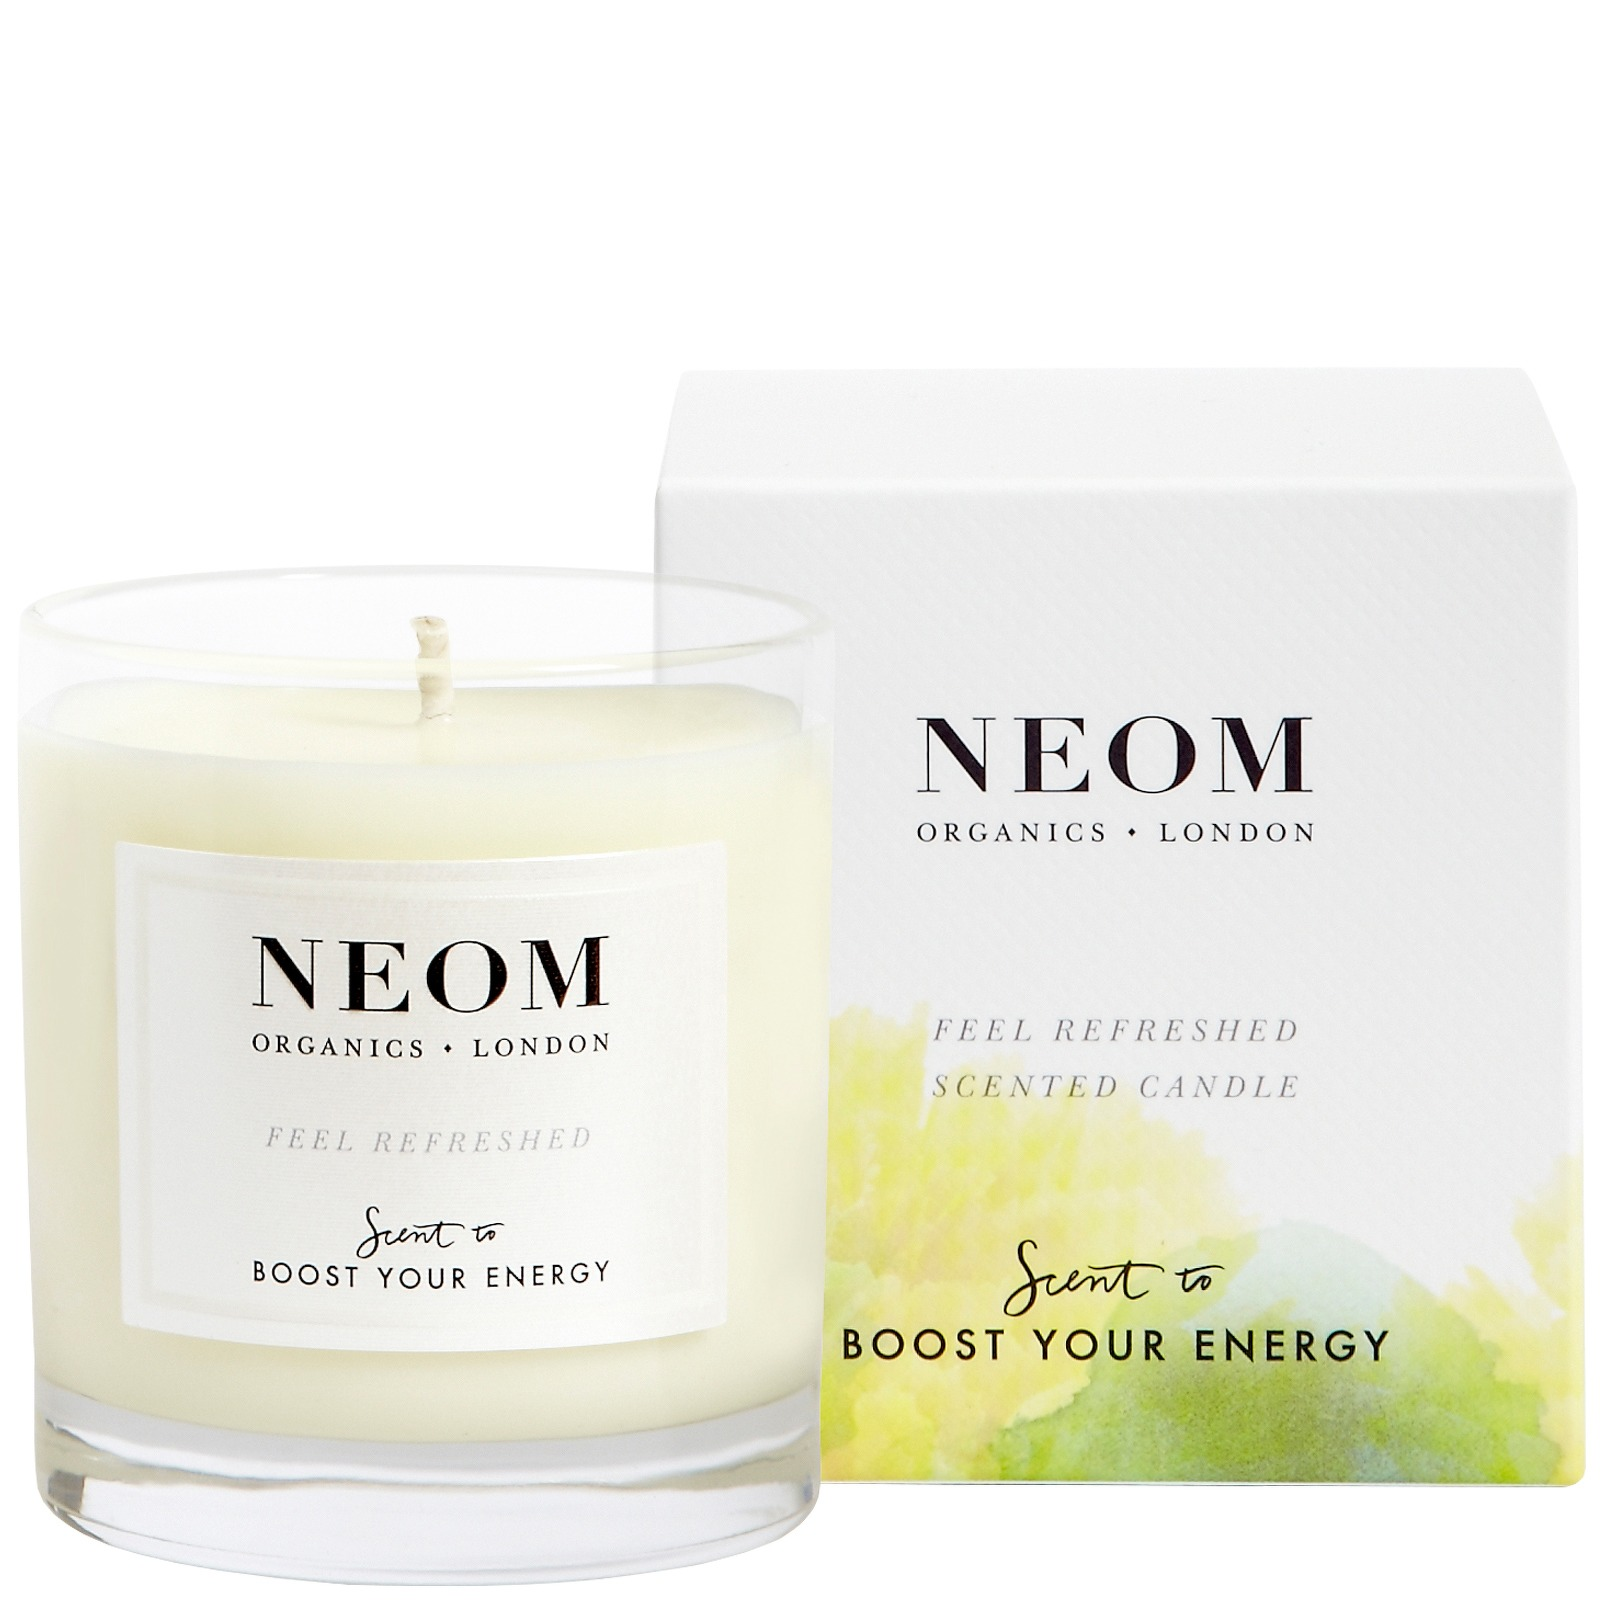 Neom Organics London Scent To Boost Your Energy Feel Refreshed Scented Candle (1 Wick) 185g